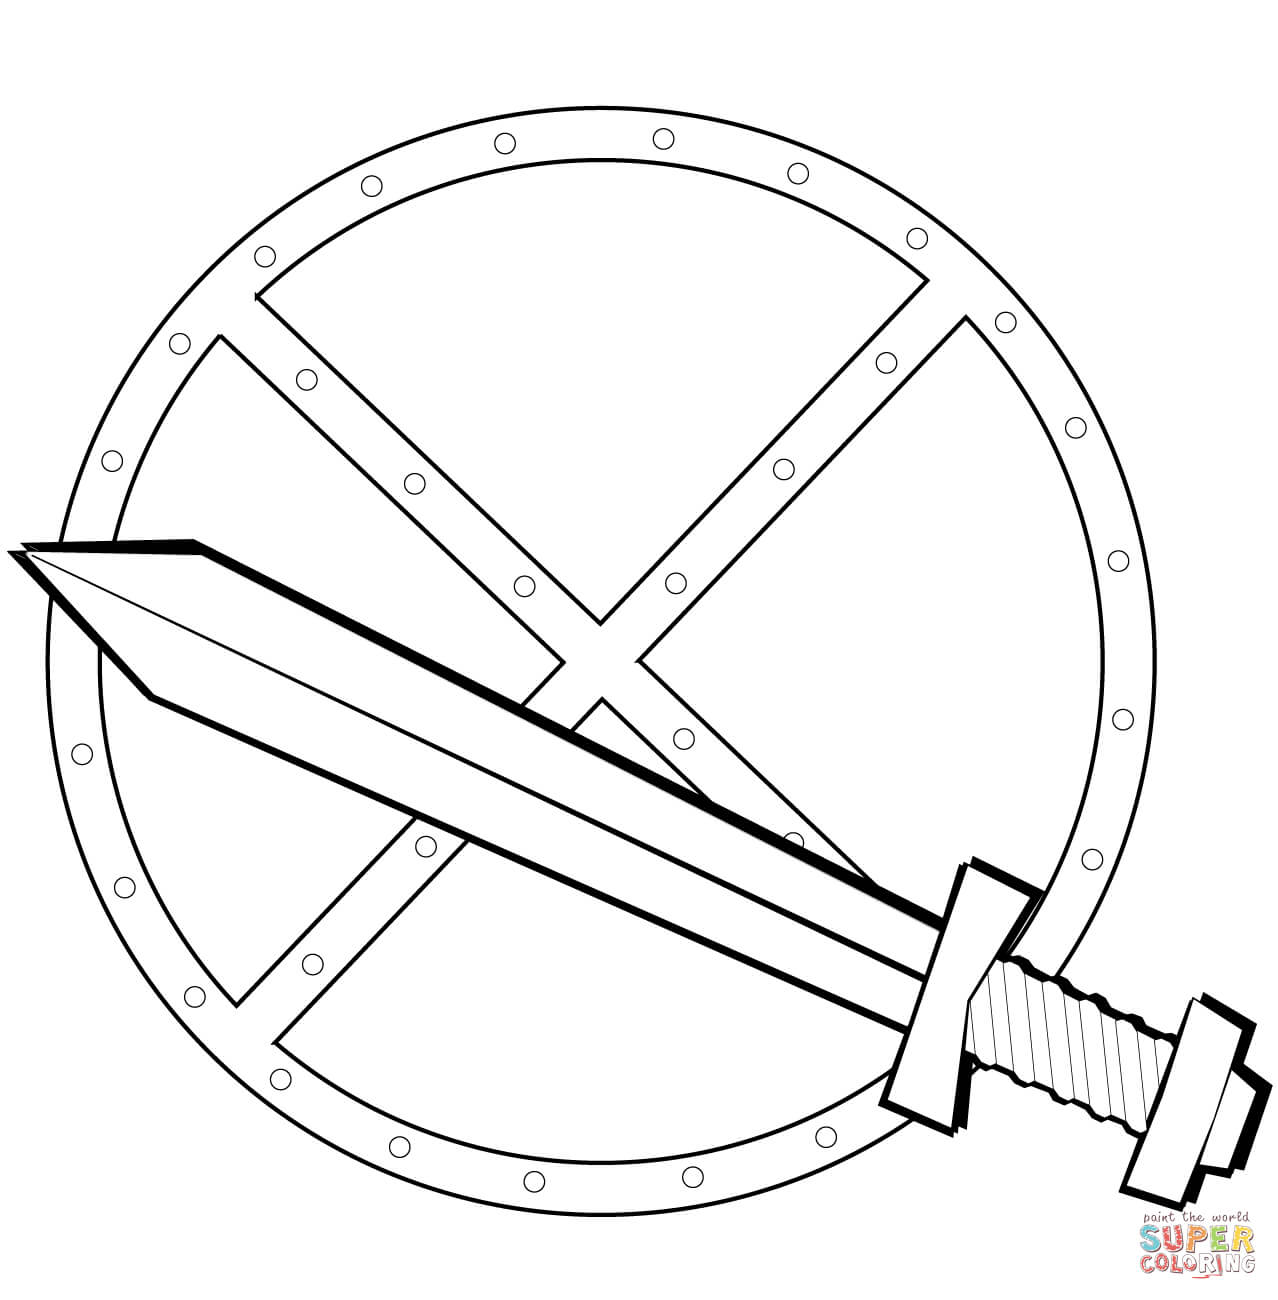 Shield coloring download shield coloring for Ctr shield coloring page